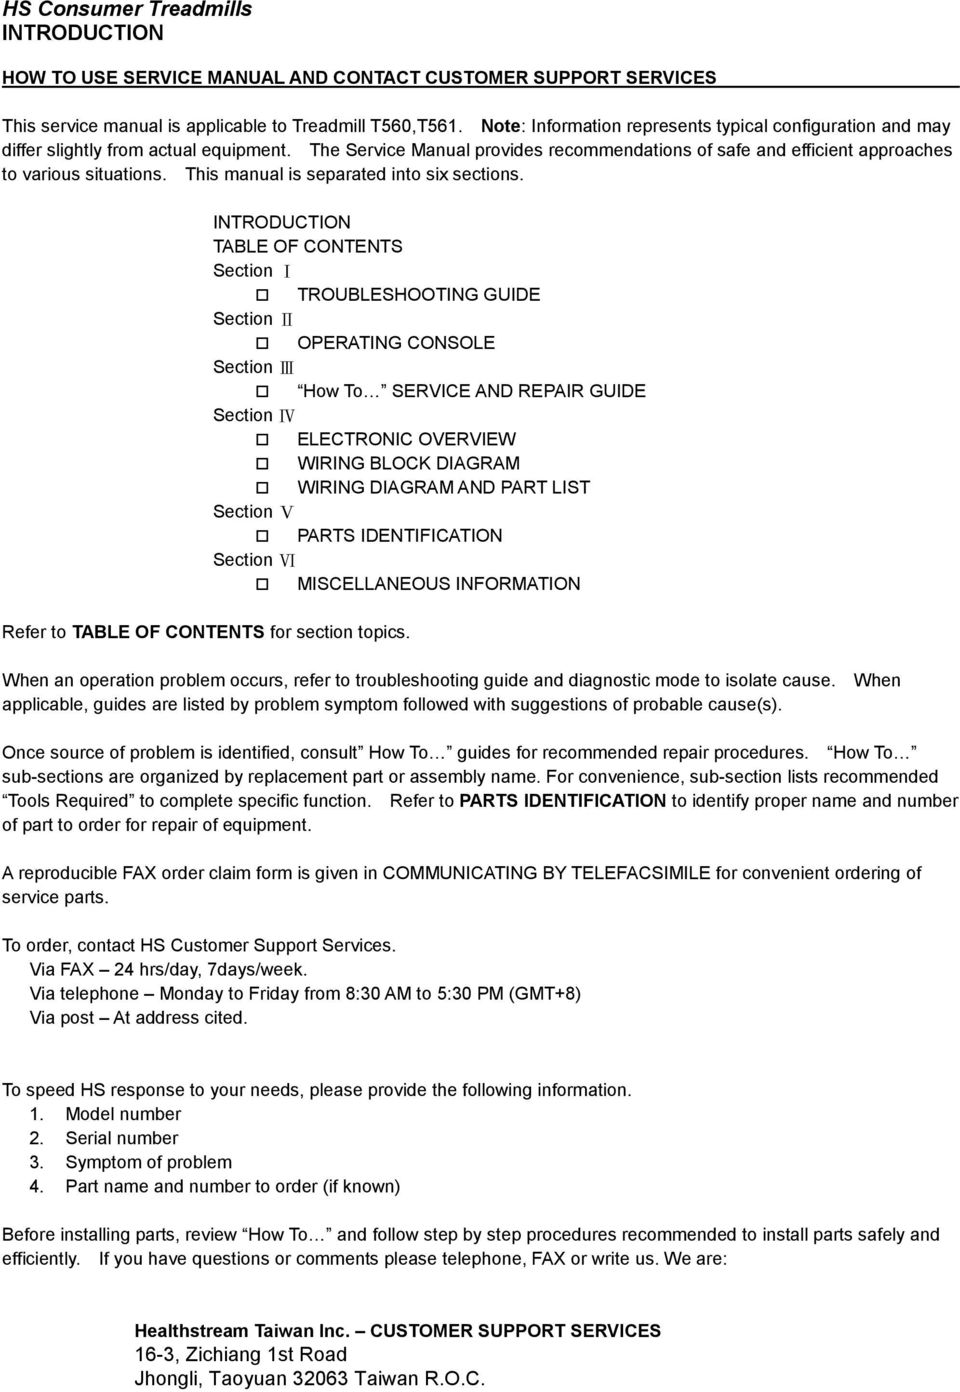 TREADMILL SERVICE MANUAL T560/T561. Customer Support Services ... on